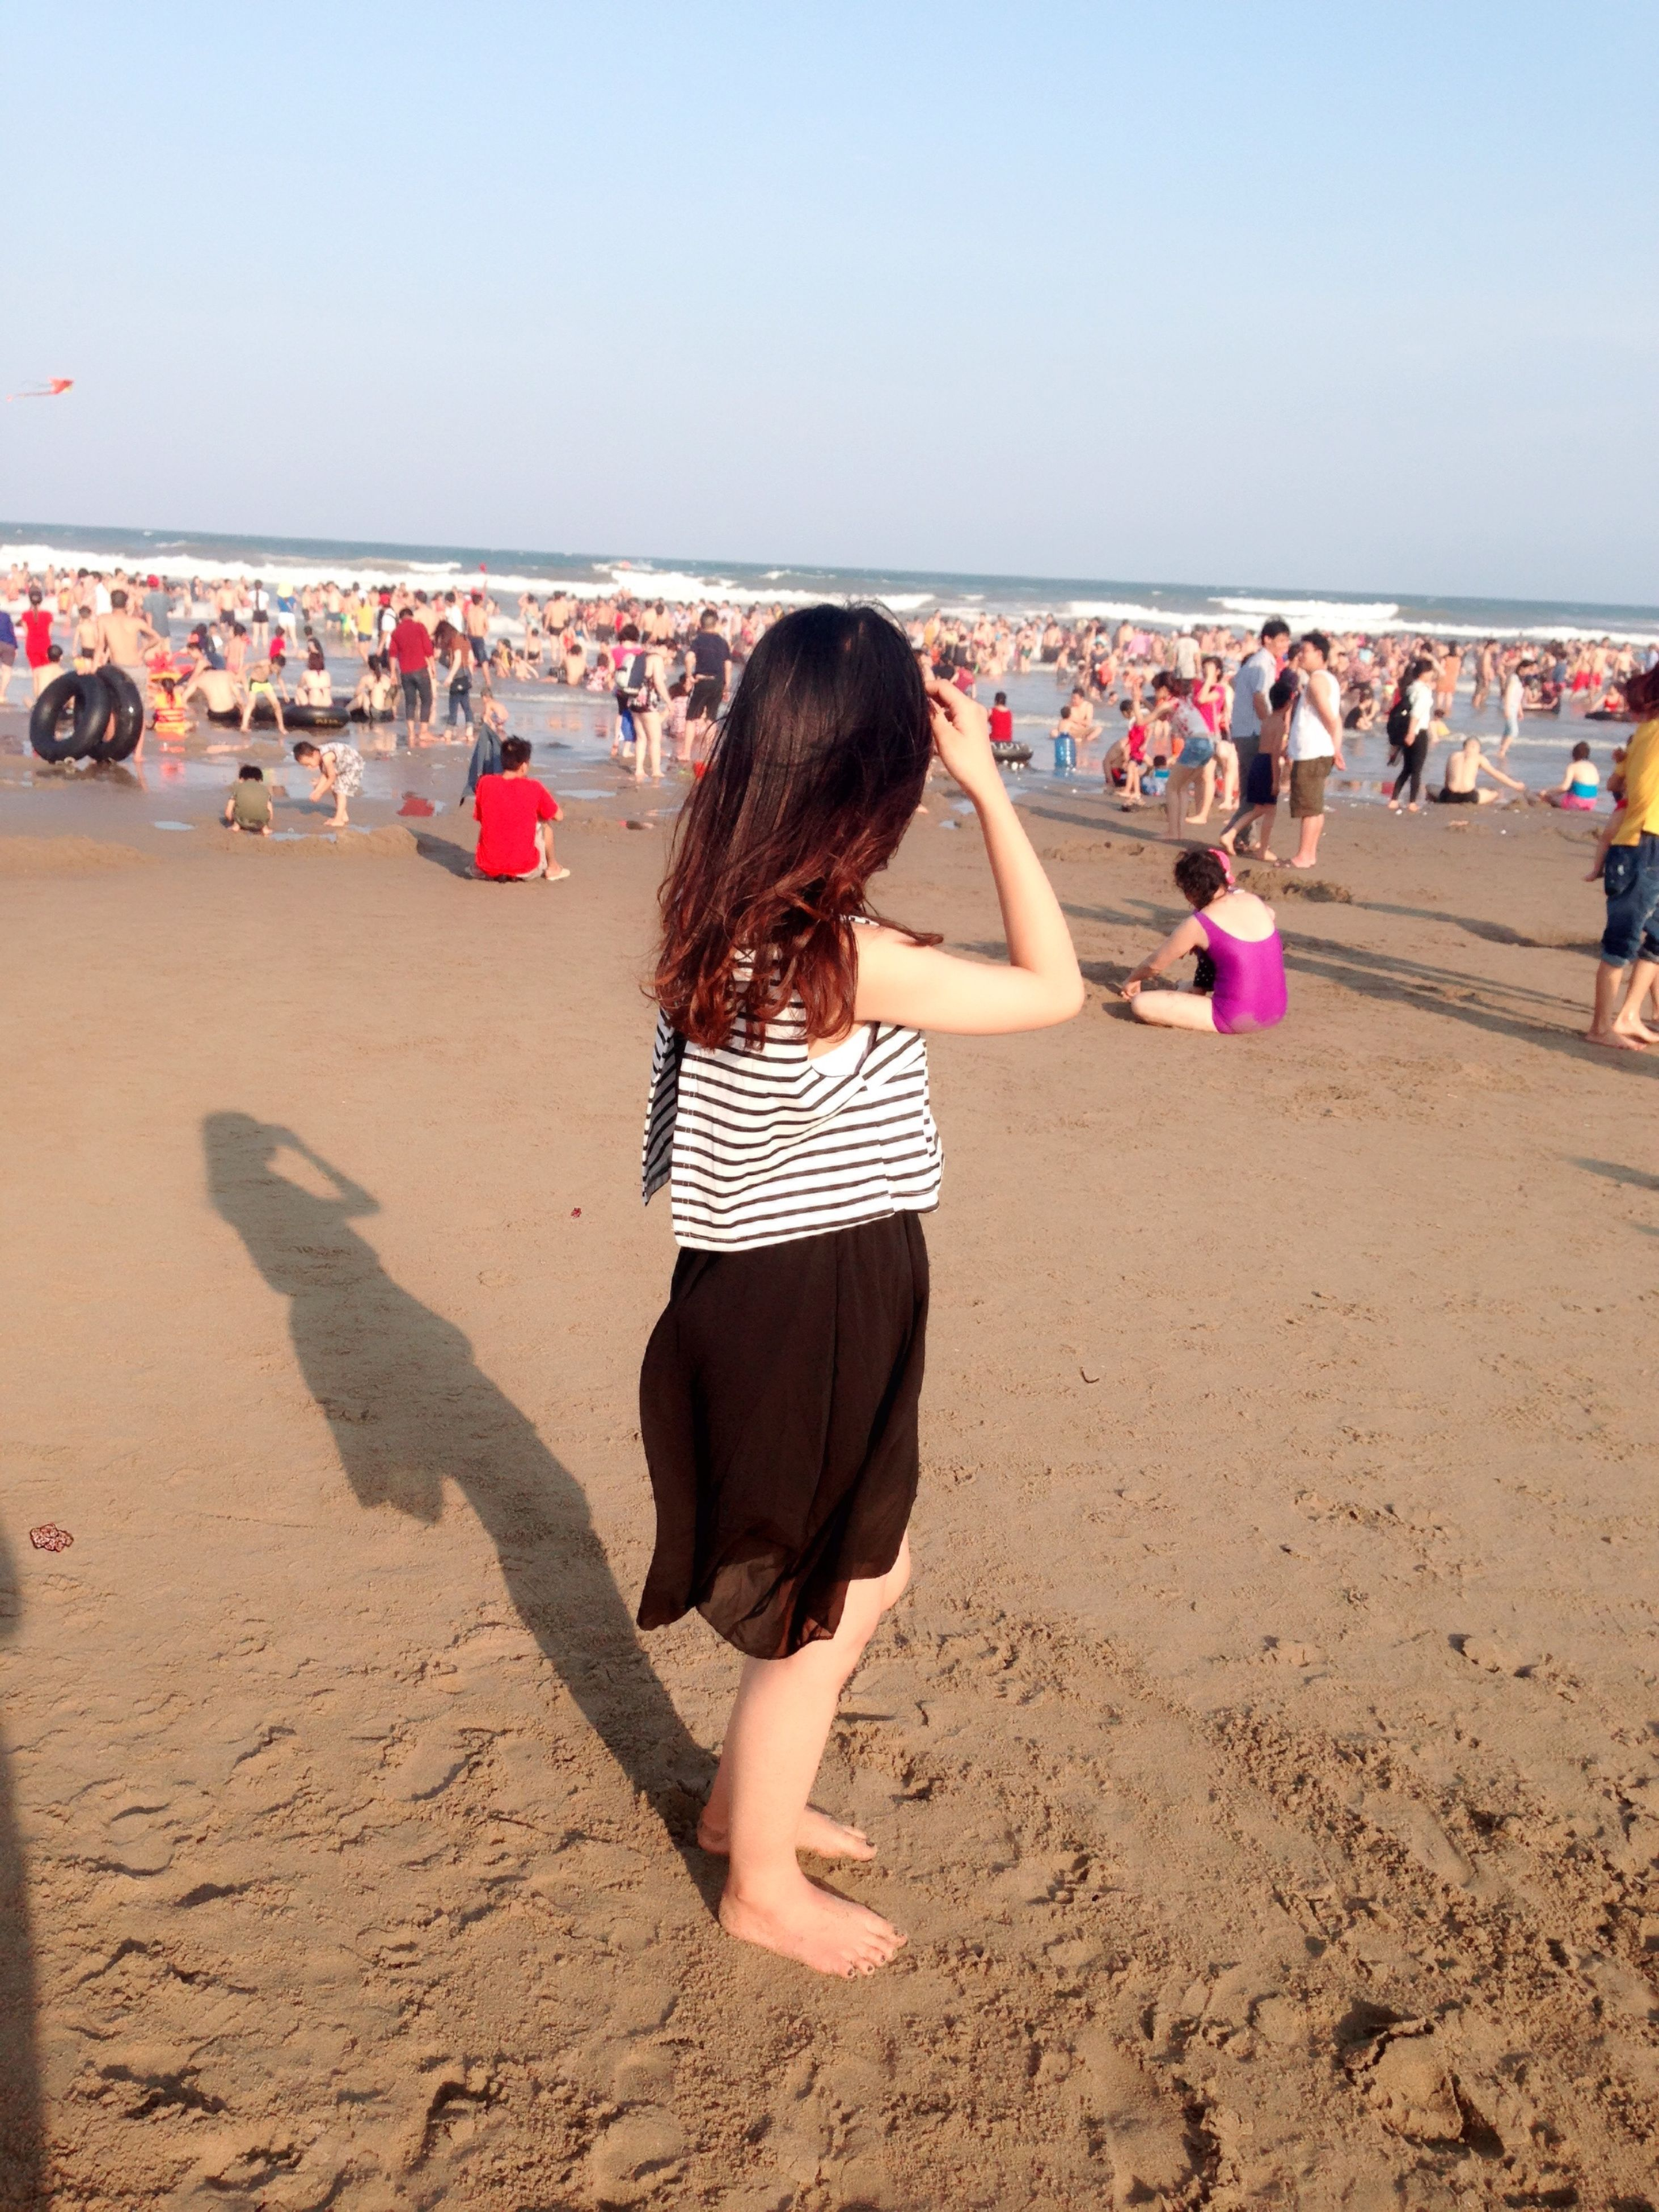 beach, sand, sea, shore, leisure activity, lifestyles, person, horizon over water, clear sky, vacations, large group of people, summer, rear view, standing, casual clothing, sunlight, copy space, enjoyment, water